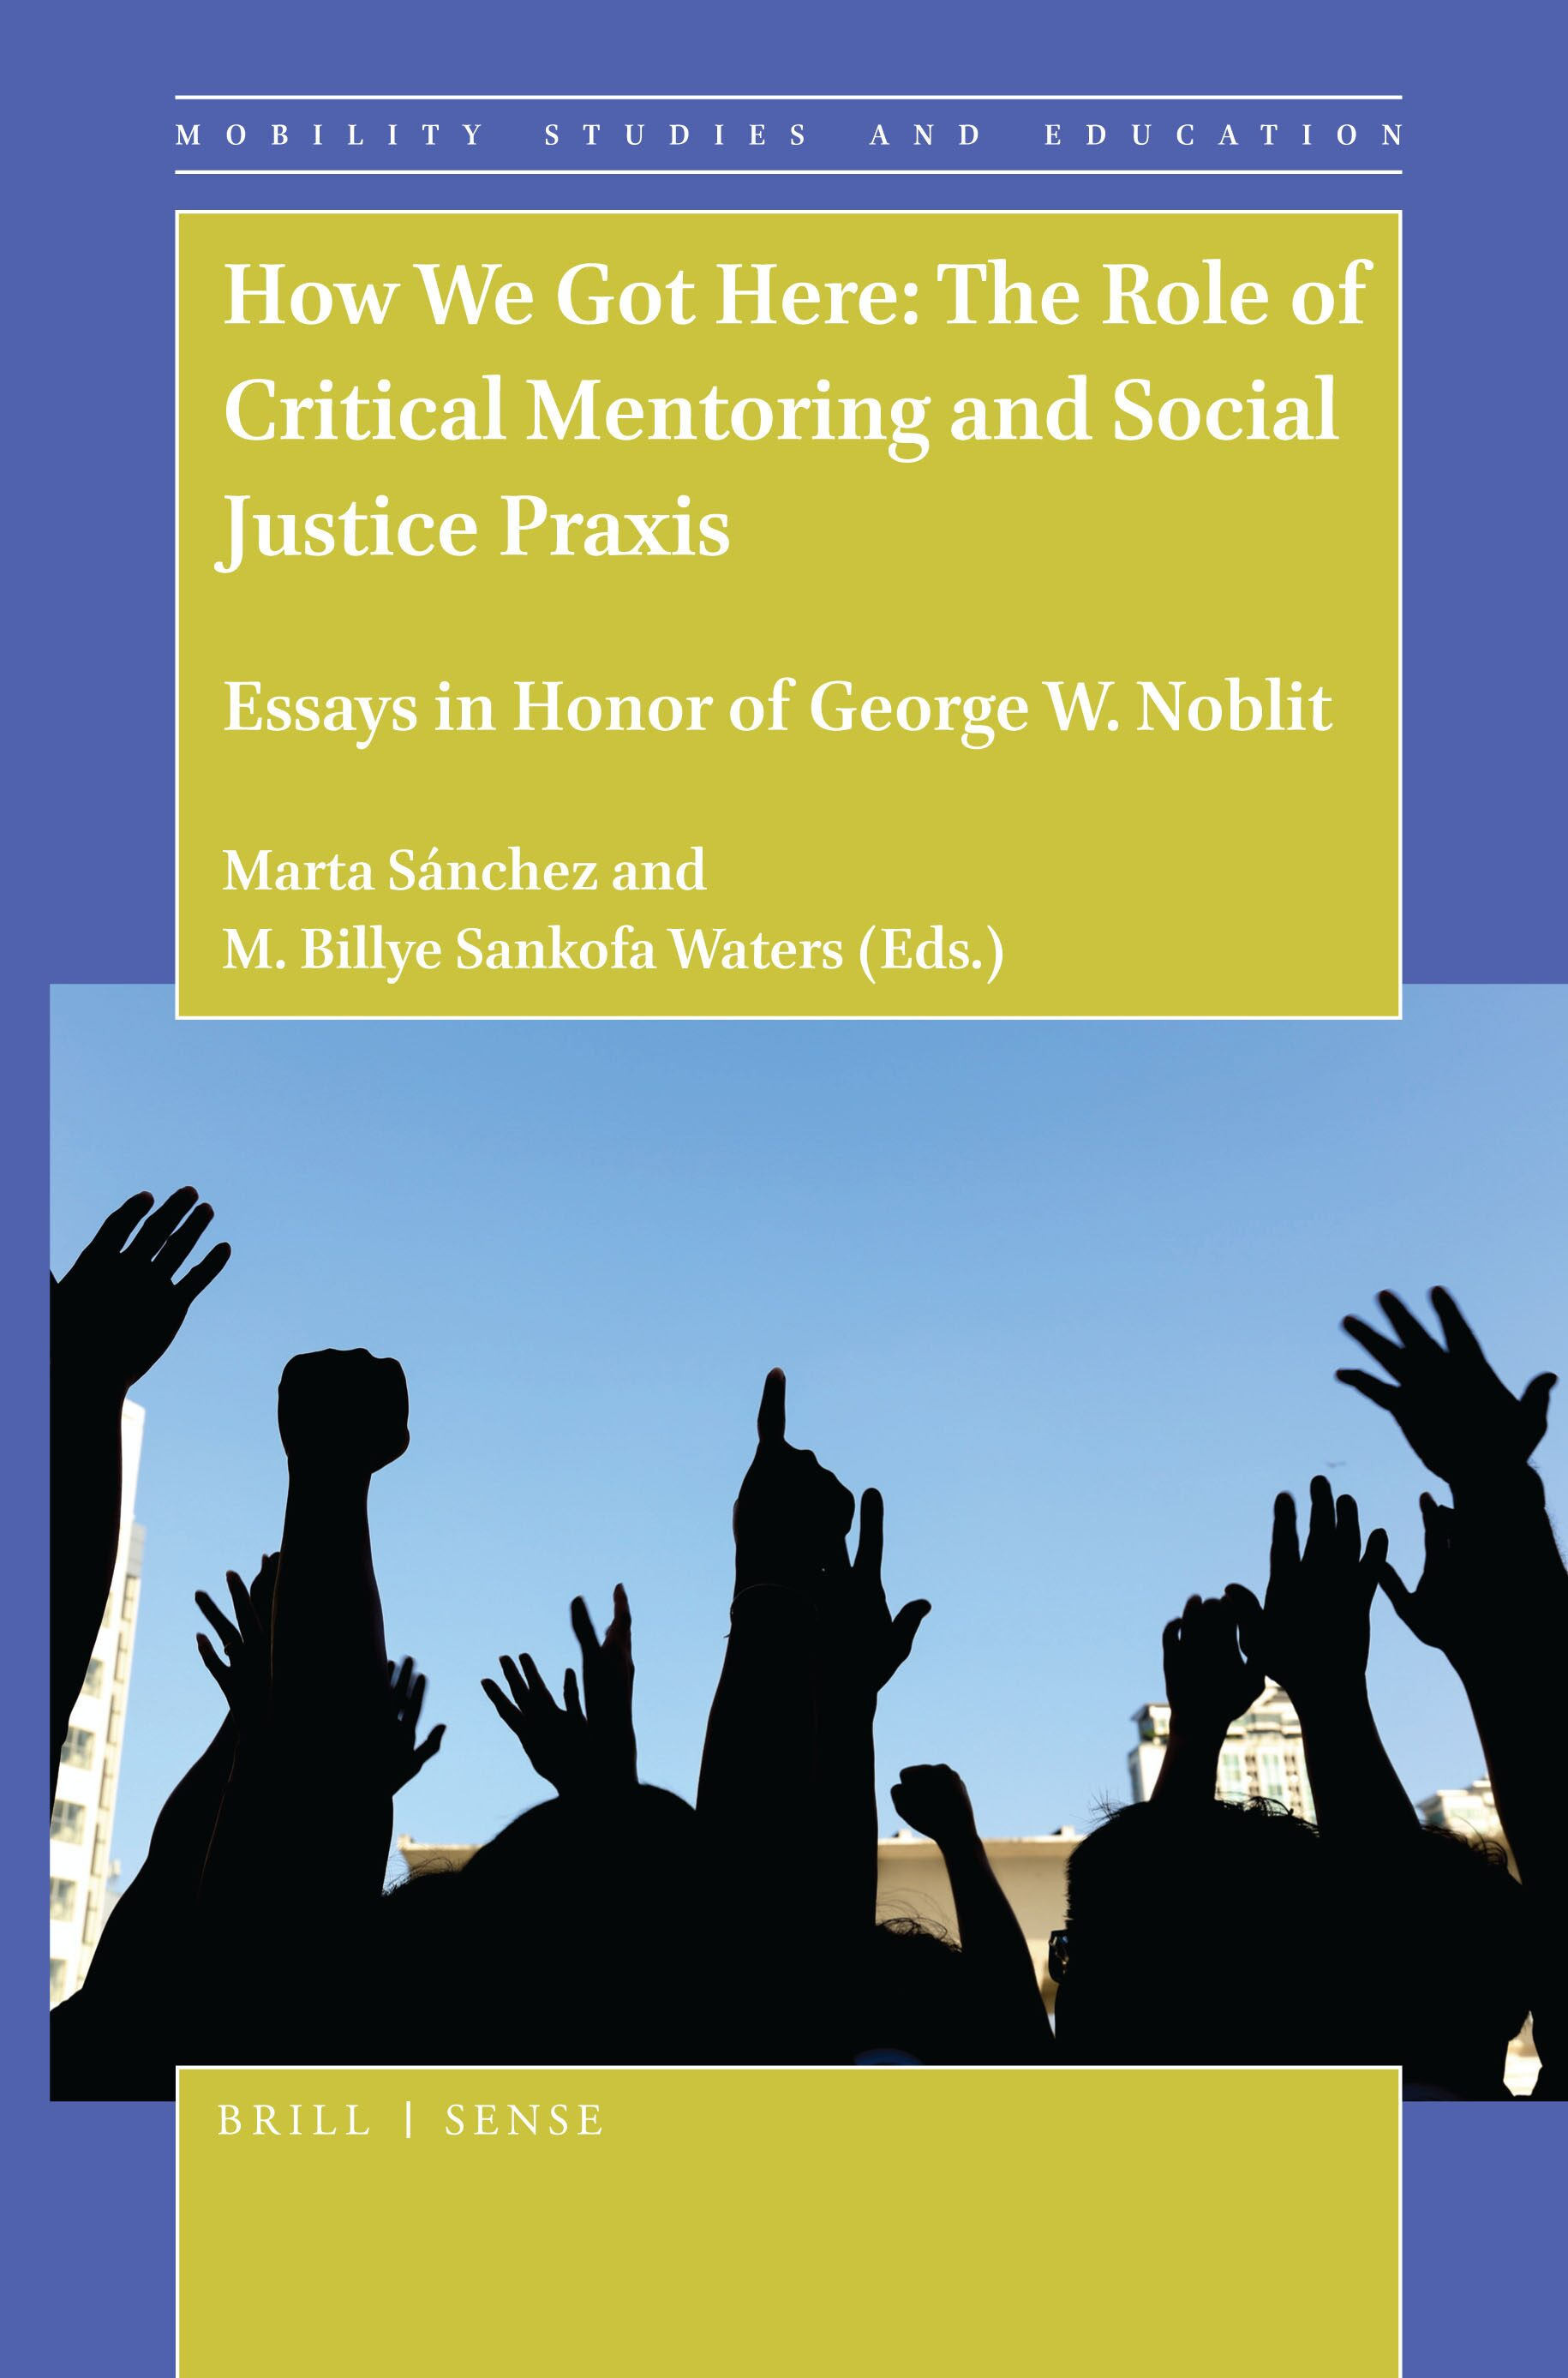 how we got here the role of critical mentoring and social justice praxis essays in honor of george w noblit brill